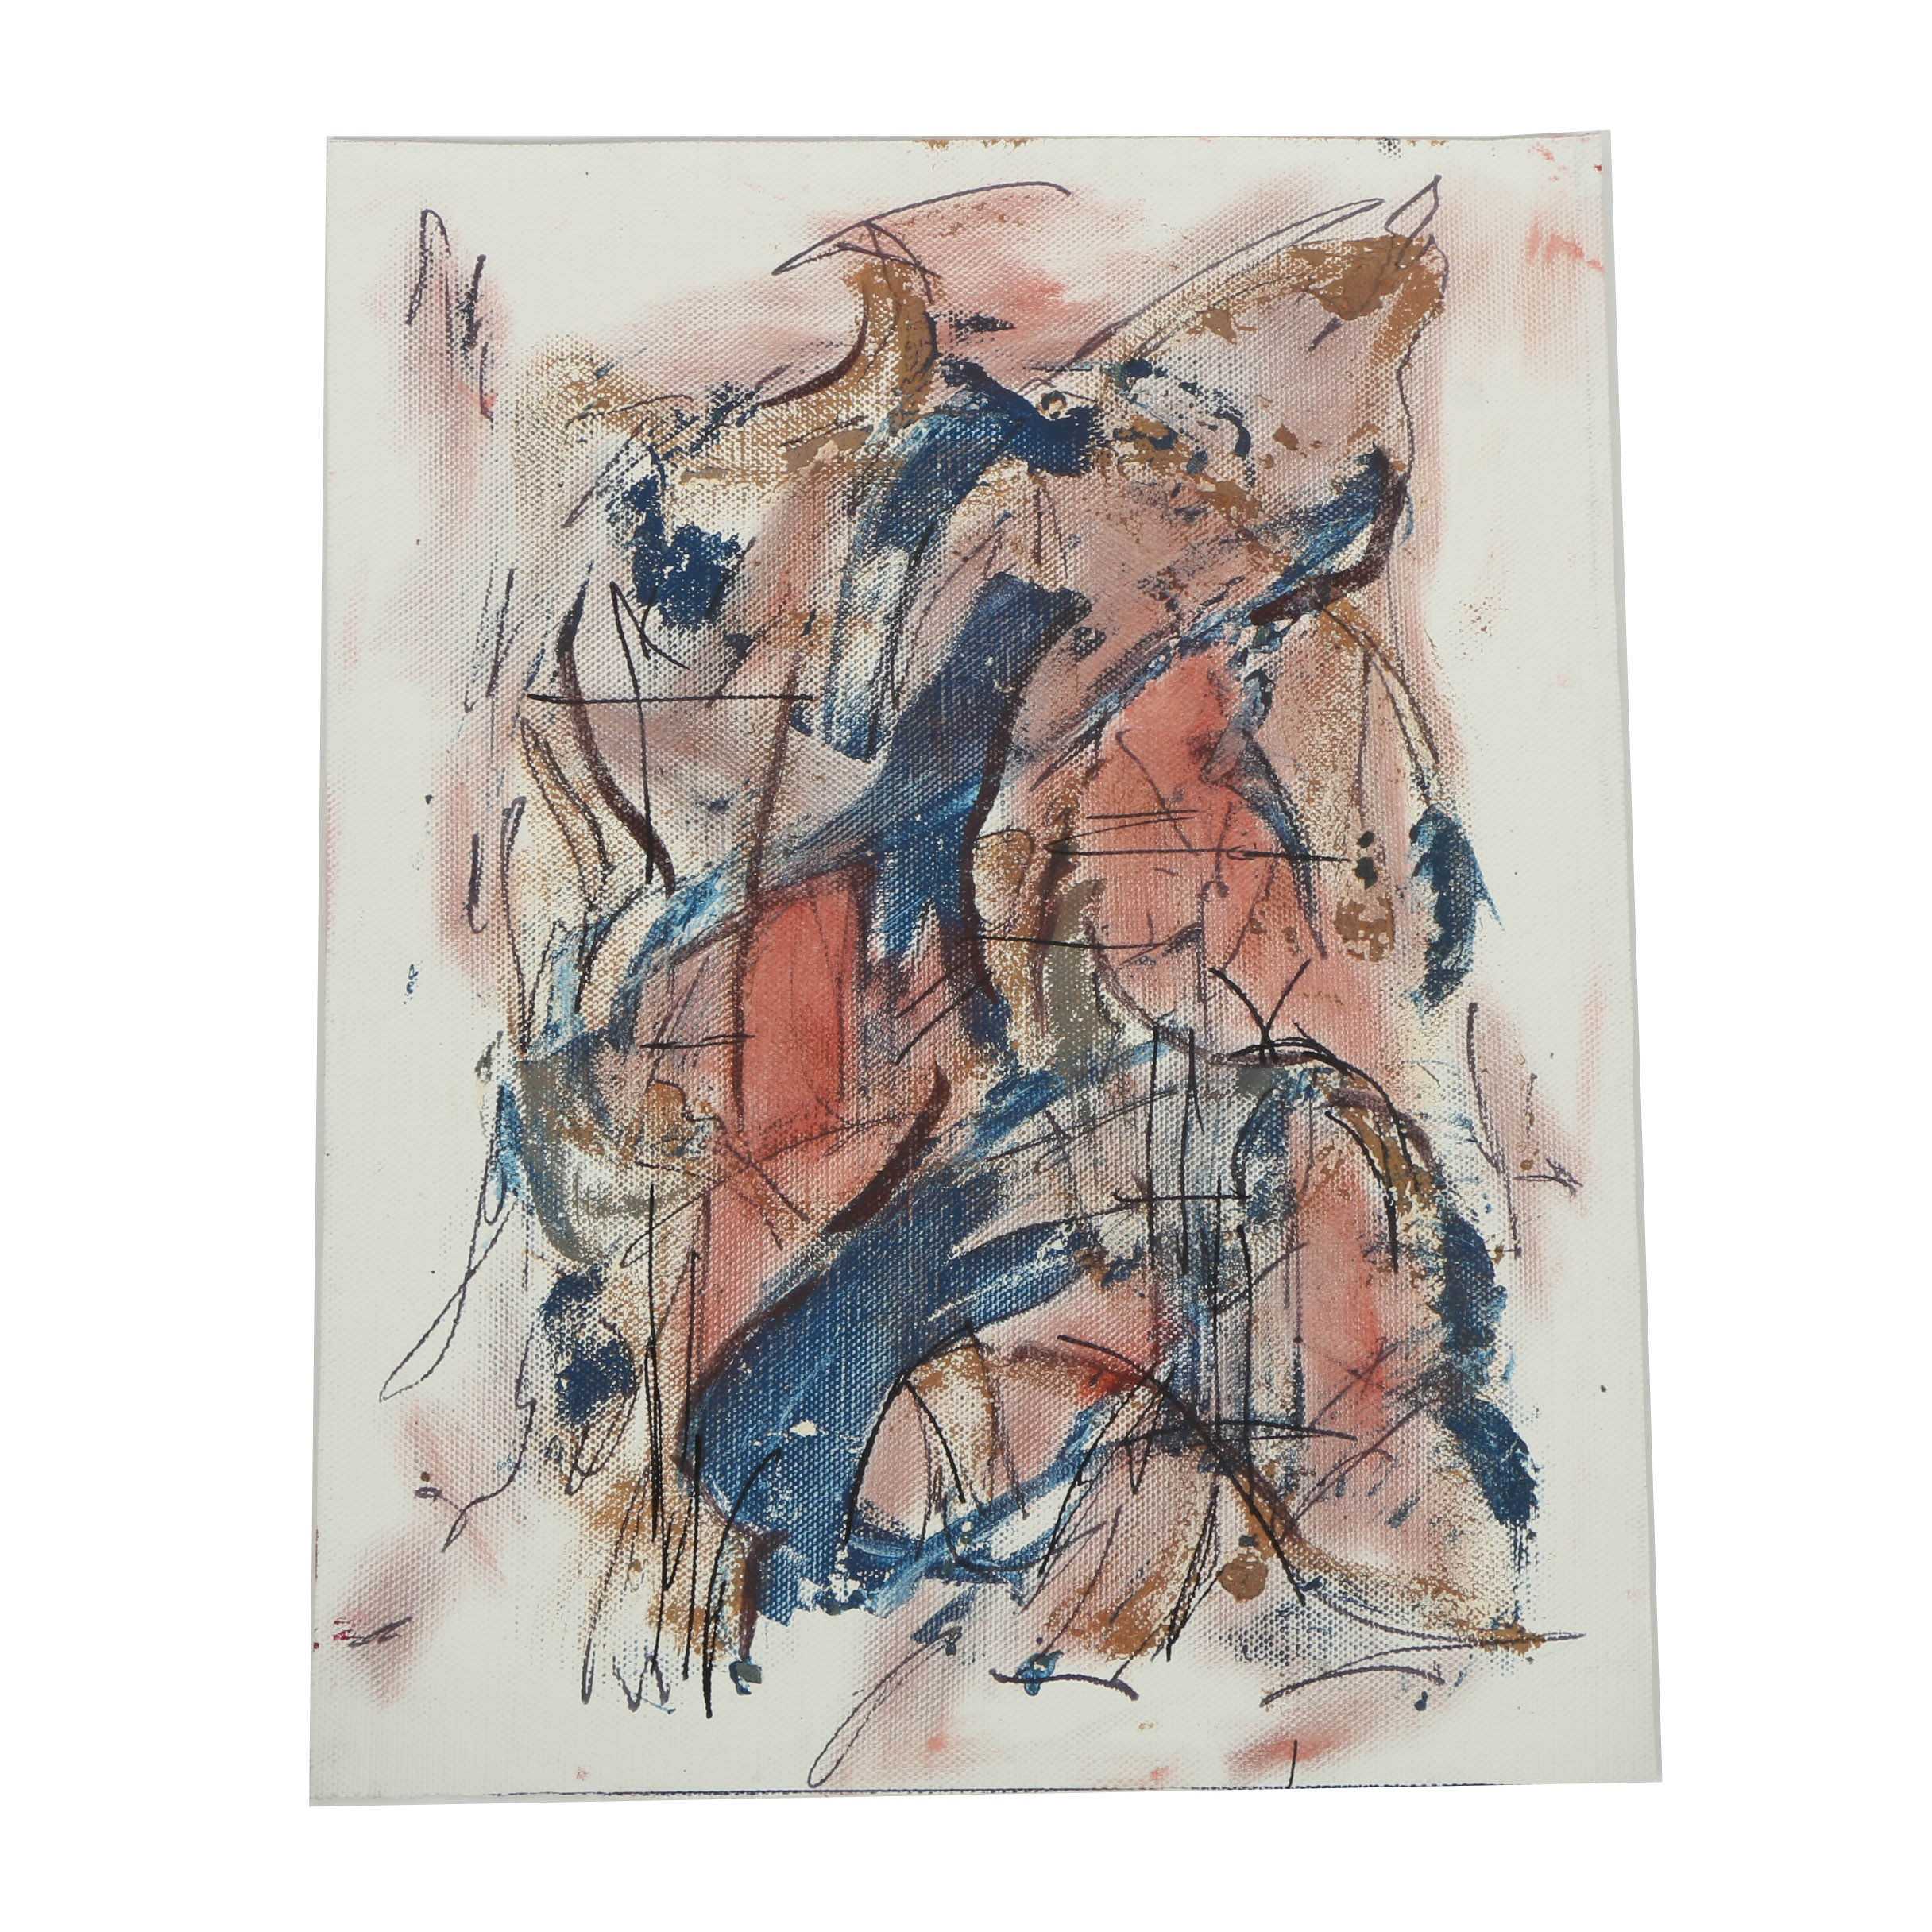 Ricardo Morin Oil Painting on Unstretched Linen of an Abstract Composition